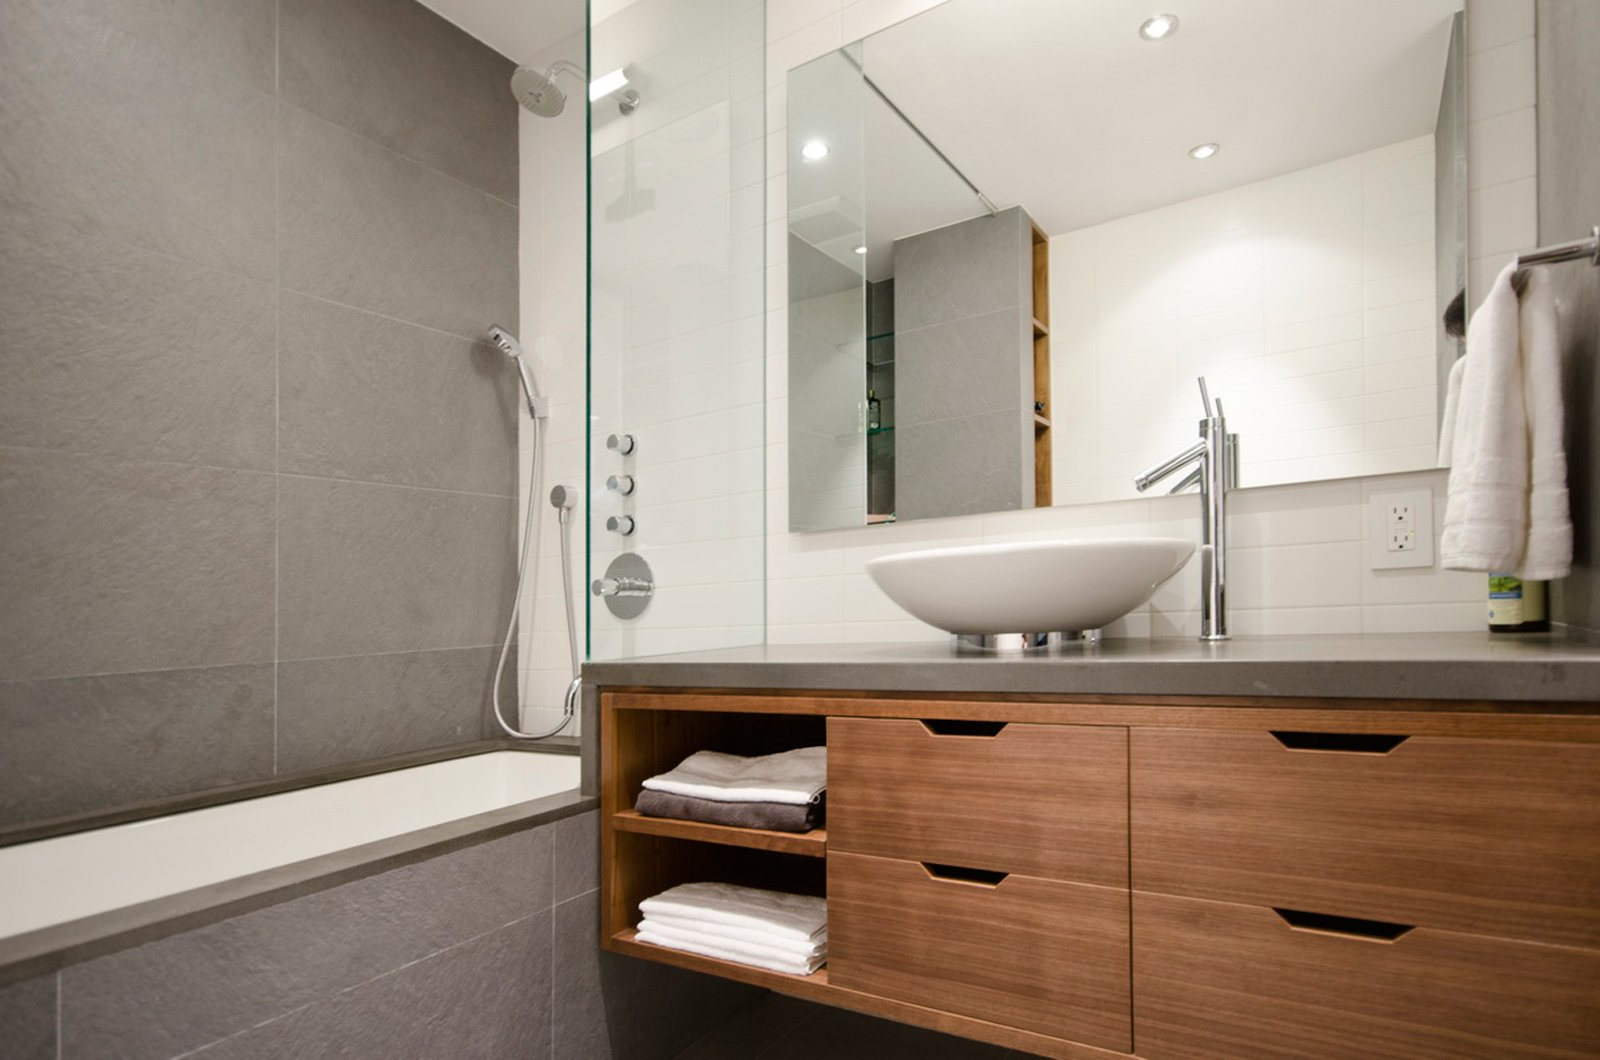 The bathroom features fixtures by Duravit and Hansgrohe.  University Place Apartment by Diana Budds